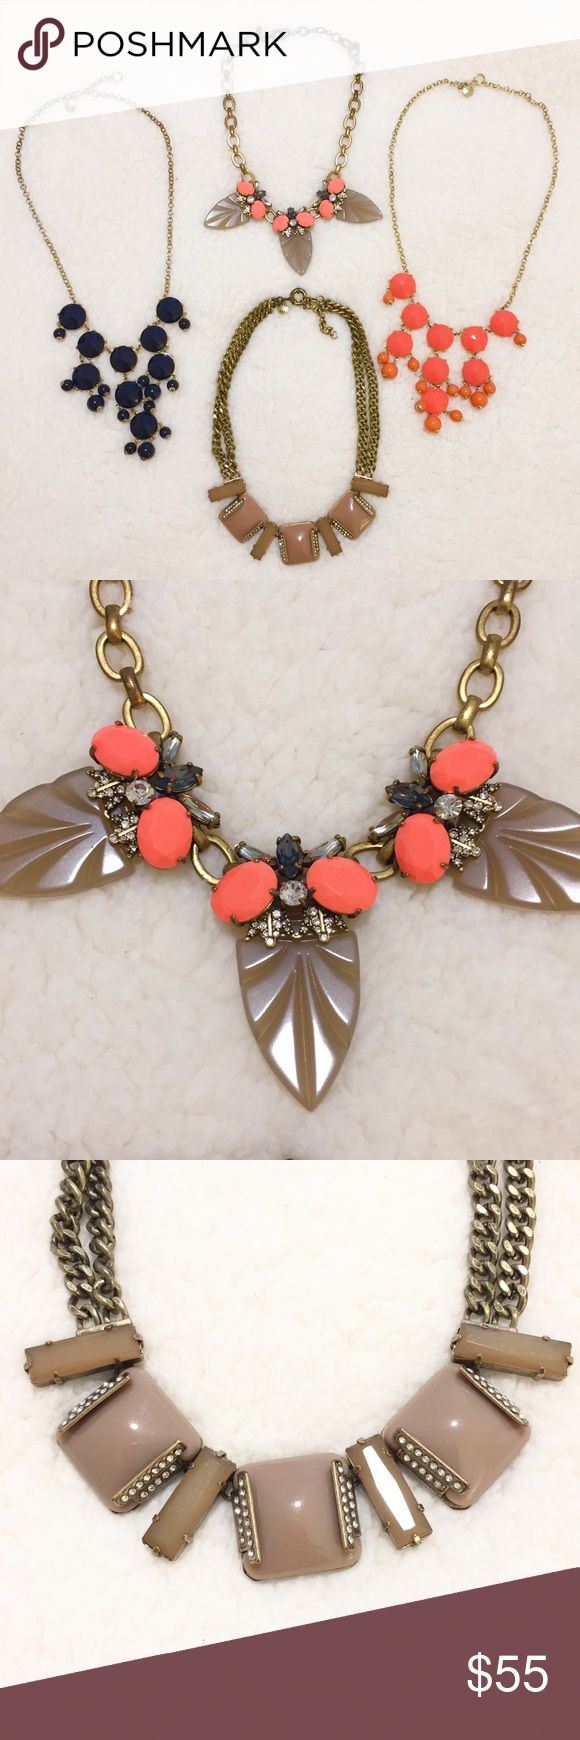 BUNDLE! // J. Crew // Statement Necklaces ✨BUNDLE SALE!!✨ 4 J. Crew Statement Necklaces.  •Black • Orange • Coral • Taupe • Gold tone•  ✨Price is for ALL 4 necklaces. Price is firm and fairly reflects condition✨   Necklaces have been worn and show some tarnishing. Pictures show exact condition.  ✨Pet & Smoke Free Home!✨Same or next day shipping!✨Bundle Discount!✨  🚚 Moving SALE - Everything in my closet must go! More listings added daily! 🚚  💕Thanks for looking & checking out my closet 💕…